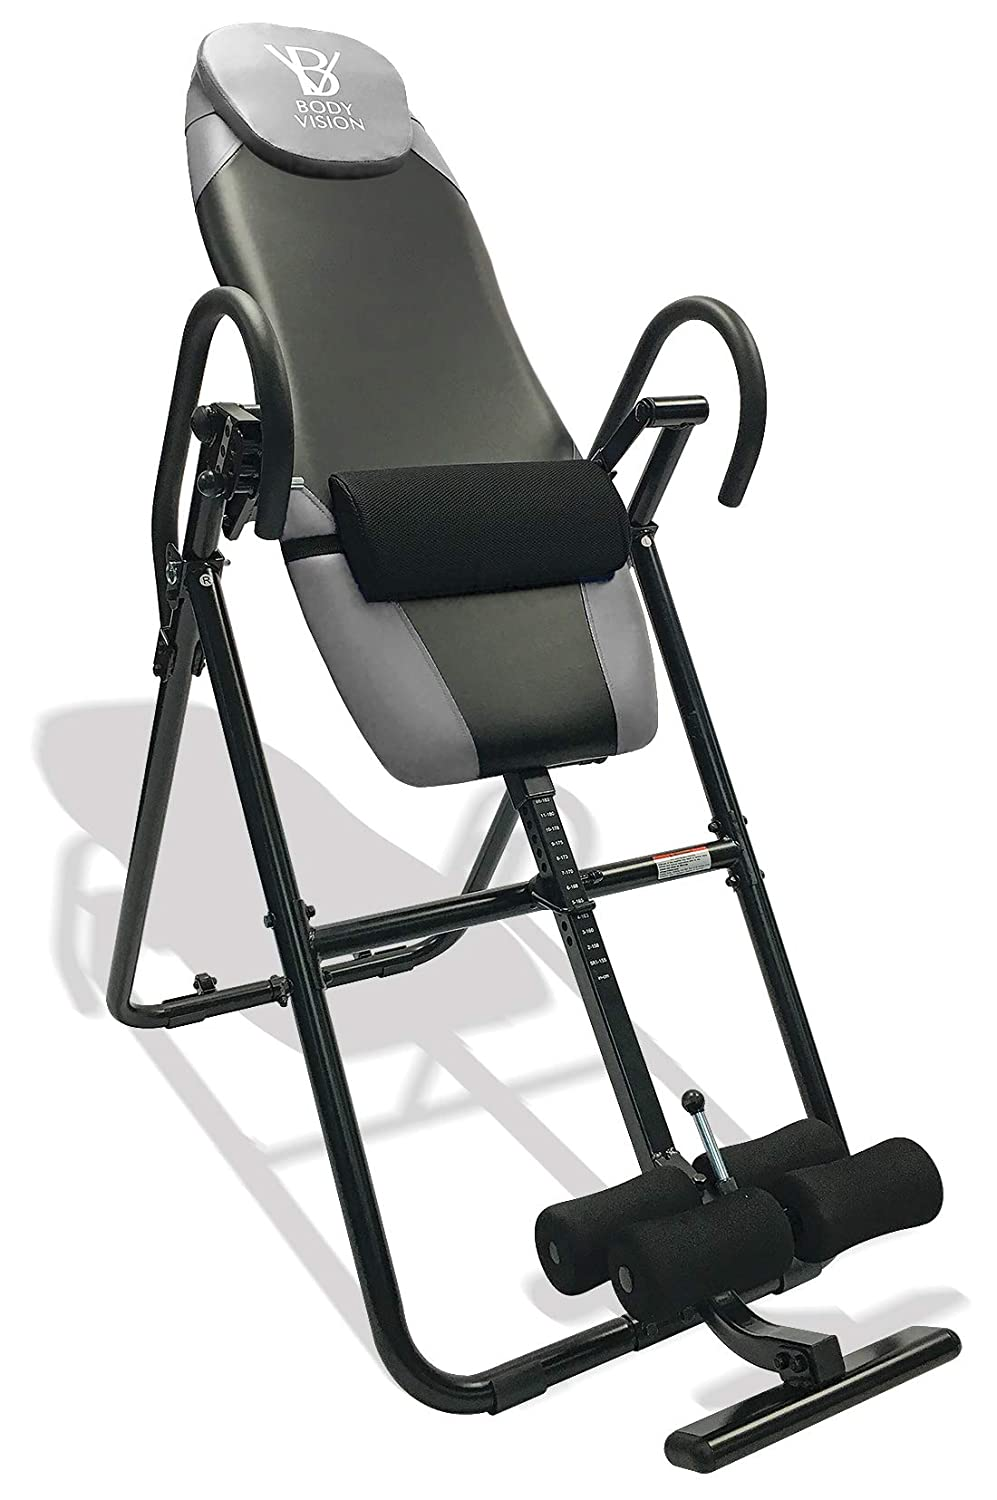 Body Vision IT9825 Premium Inversion Table with Adjustable Head Pillow Lumbar Support Pad- Heavy Duty up to 250 lbs